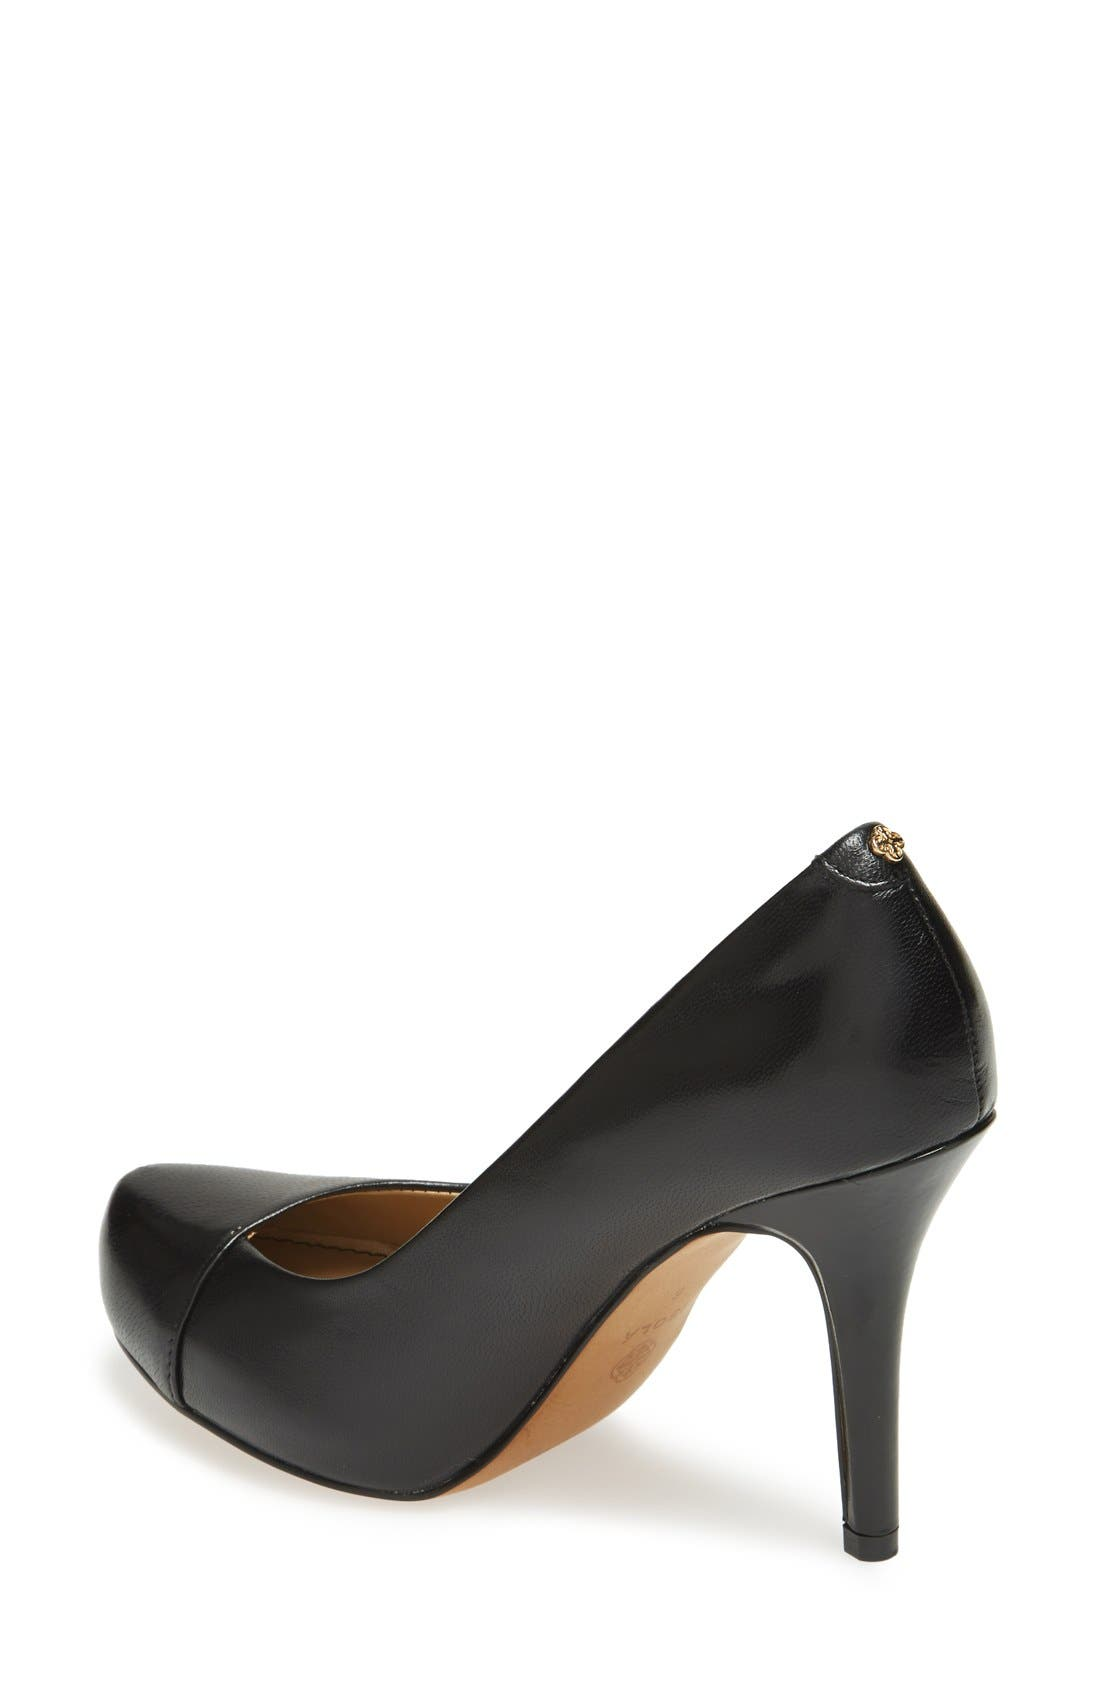 'Cagney' Platform Pump,                             Alternate thumbnail 4, color,                             001